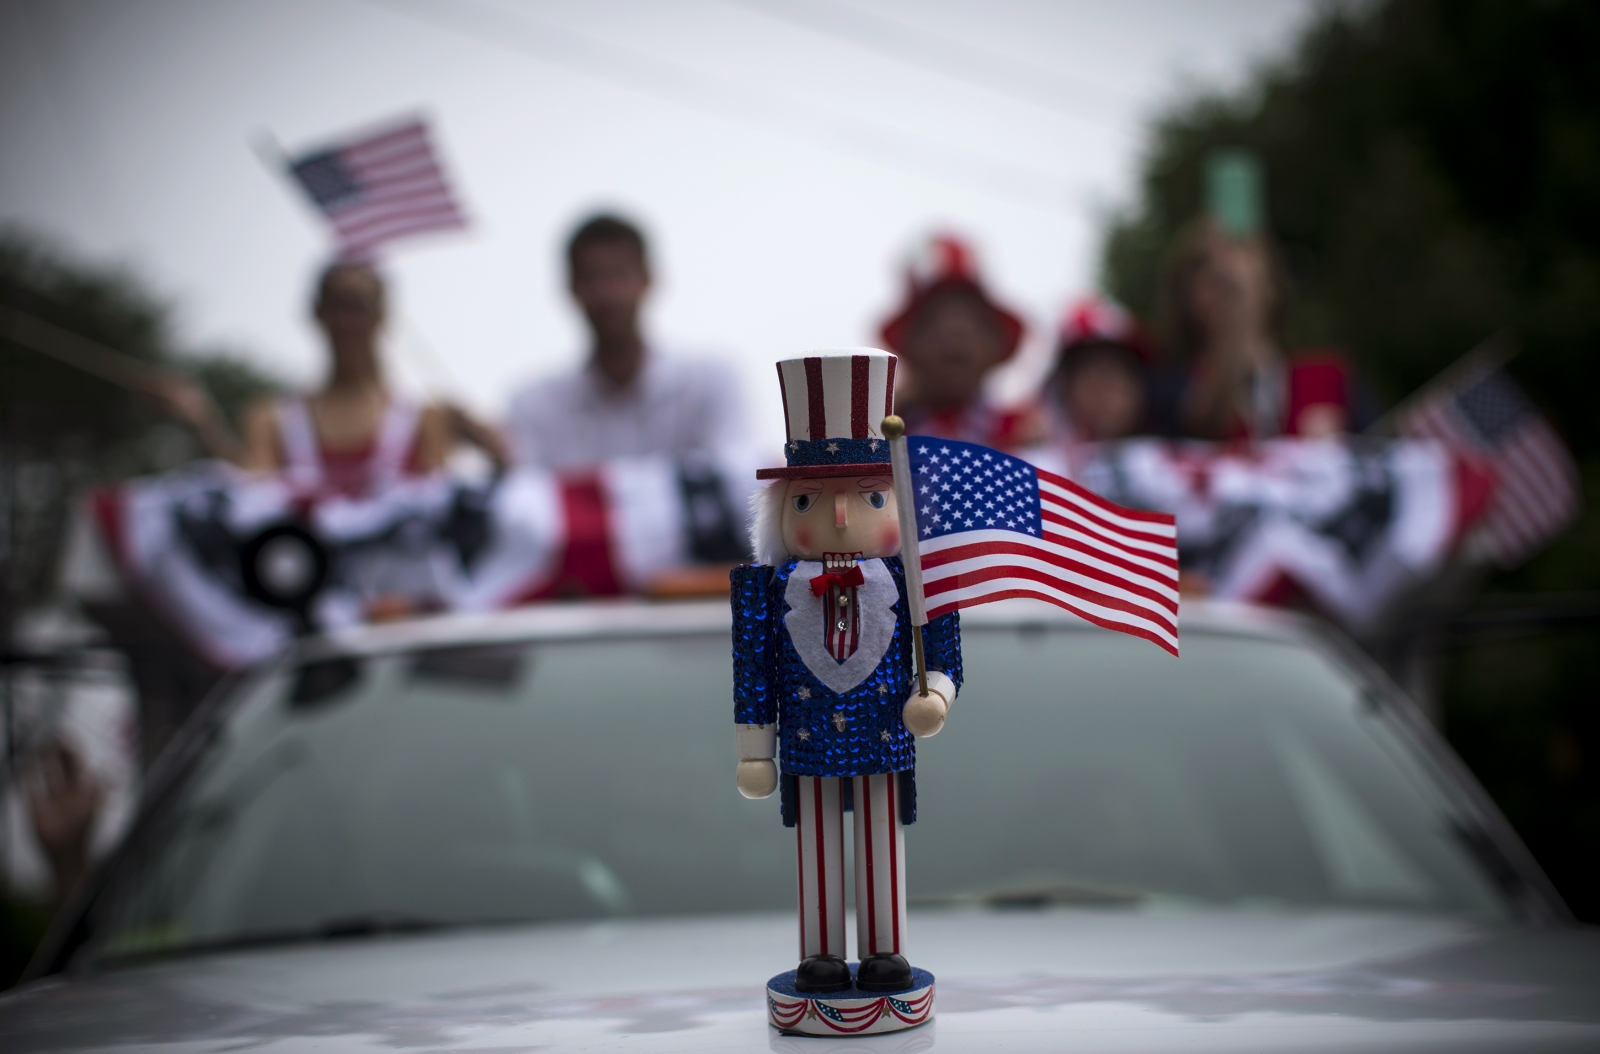 An Uncle Sam figure sits on the hood of a car in a July Fourth parade in the village of Barnstable, Massachusetts